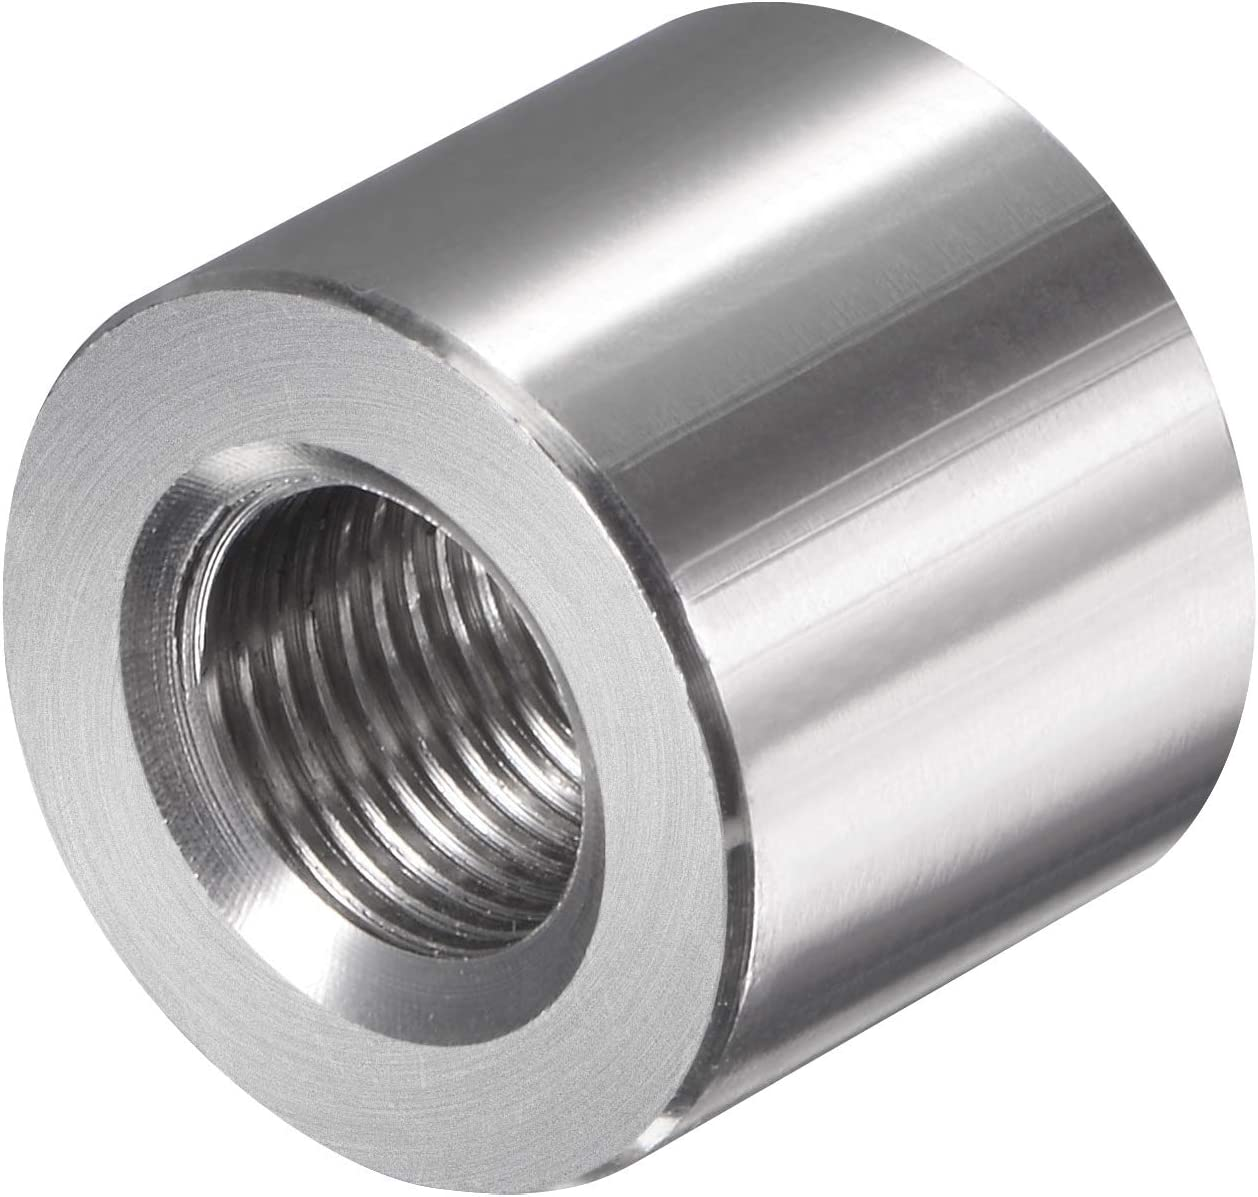 sourcing map Round Weld Nuts Stainless Steel Insert Weldable G1//8 Weld on Bung Female Nut Threaded